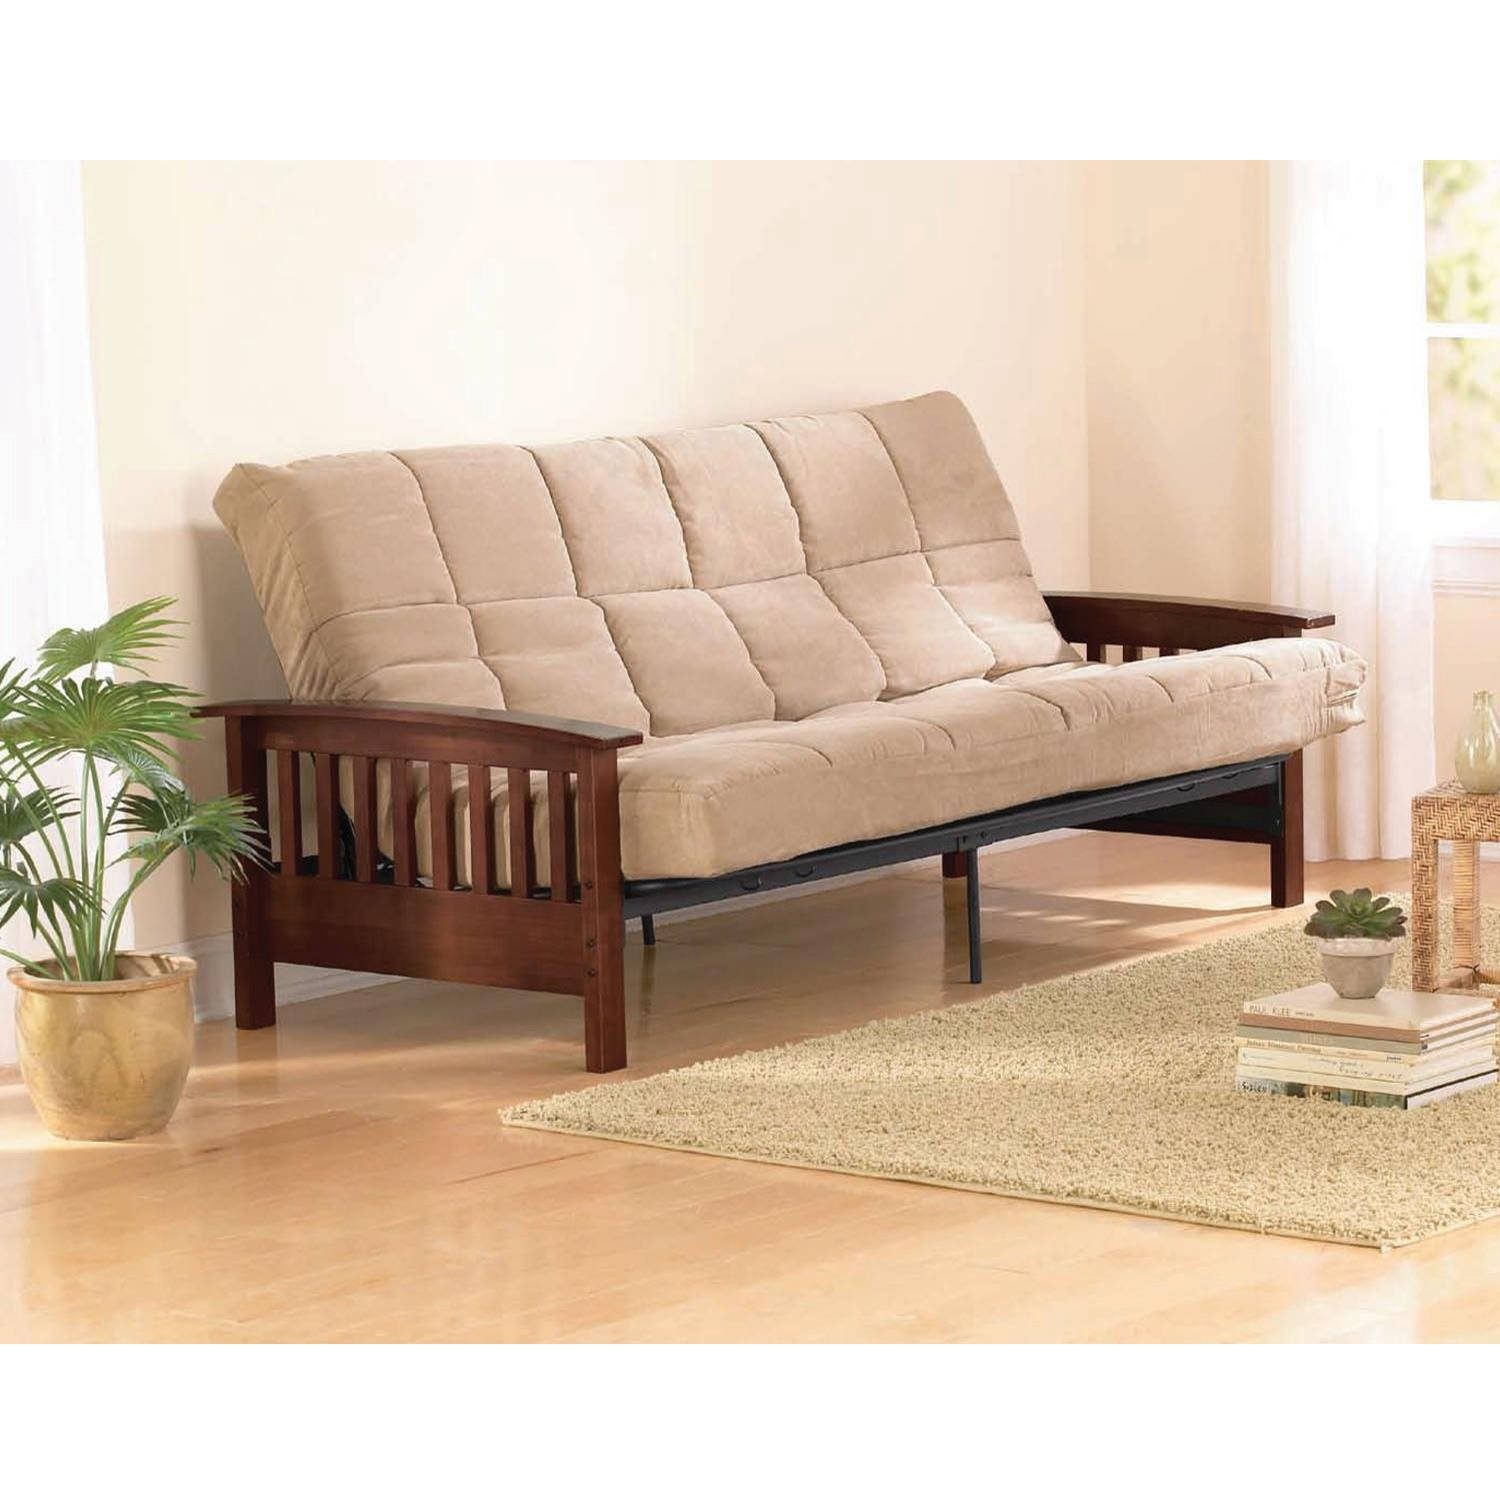 amazoncom better homes and gardens neo mission futon brown solid wood arm futon with walnut finish pet supplies - Futon Sofa Beds